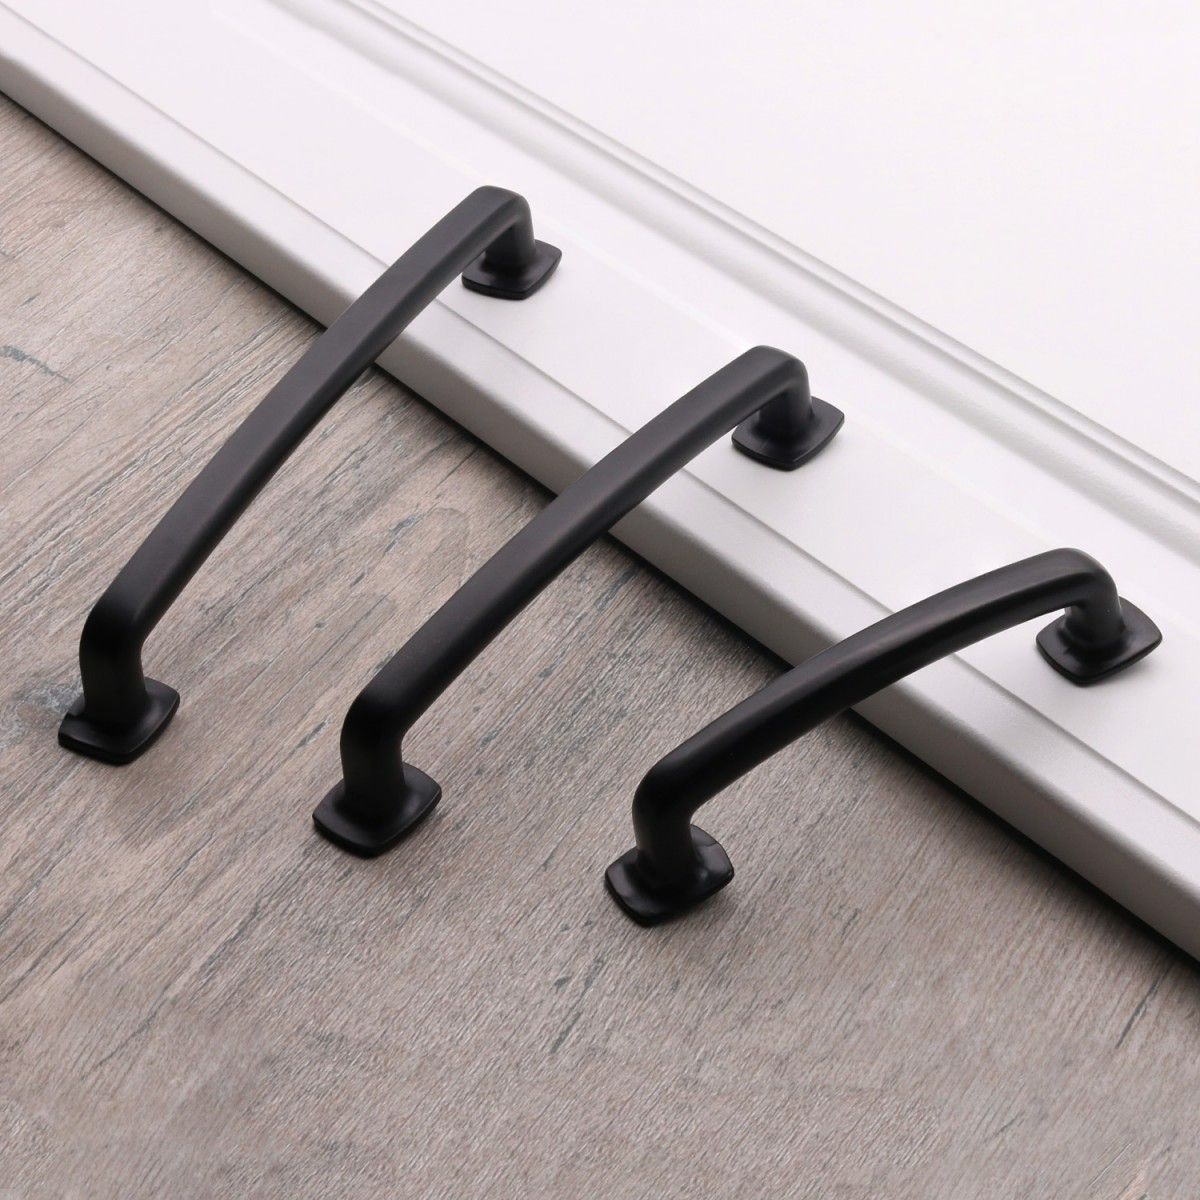 Matte Flat Black Cabinet Hardware Modern Farmhouse Kitchen